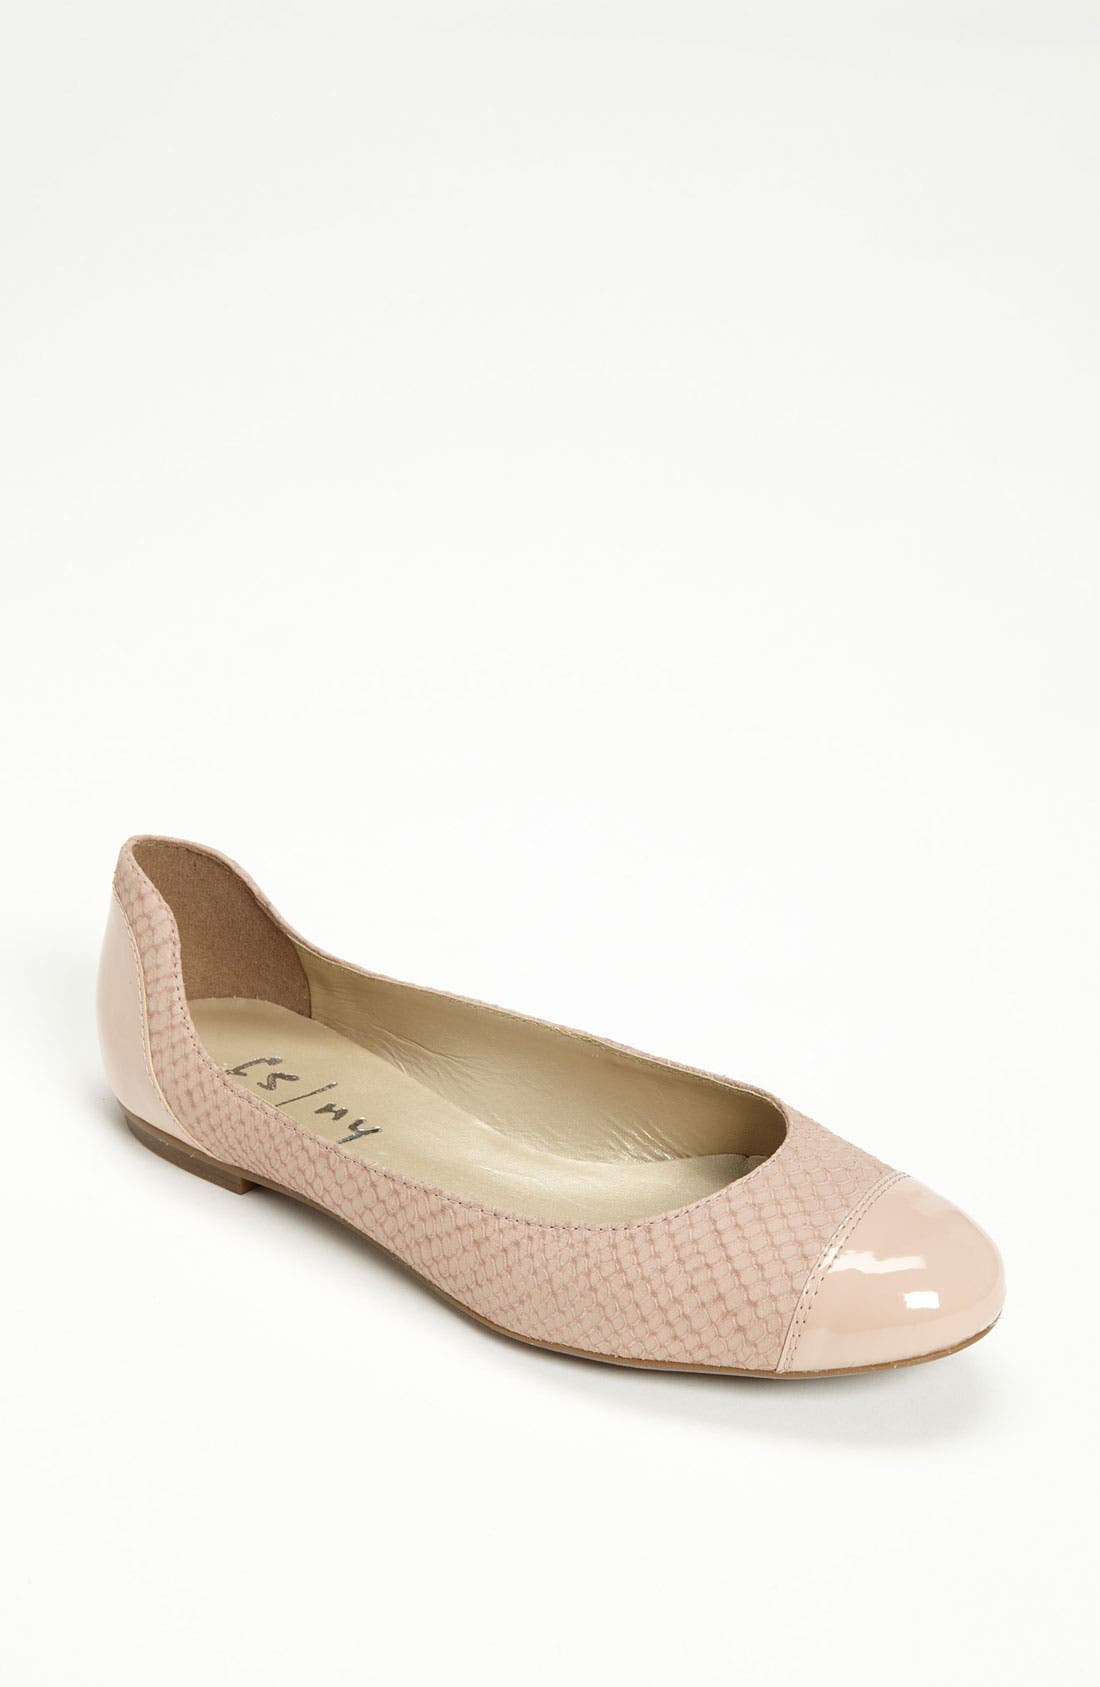 Main Image - French Sole 'Fresh' Flat